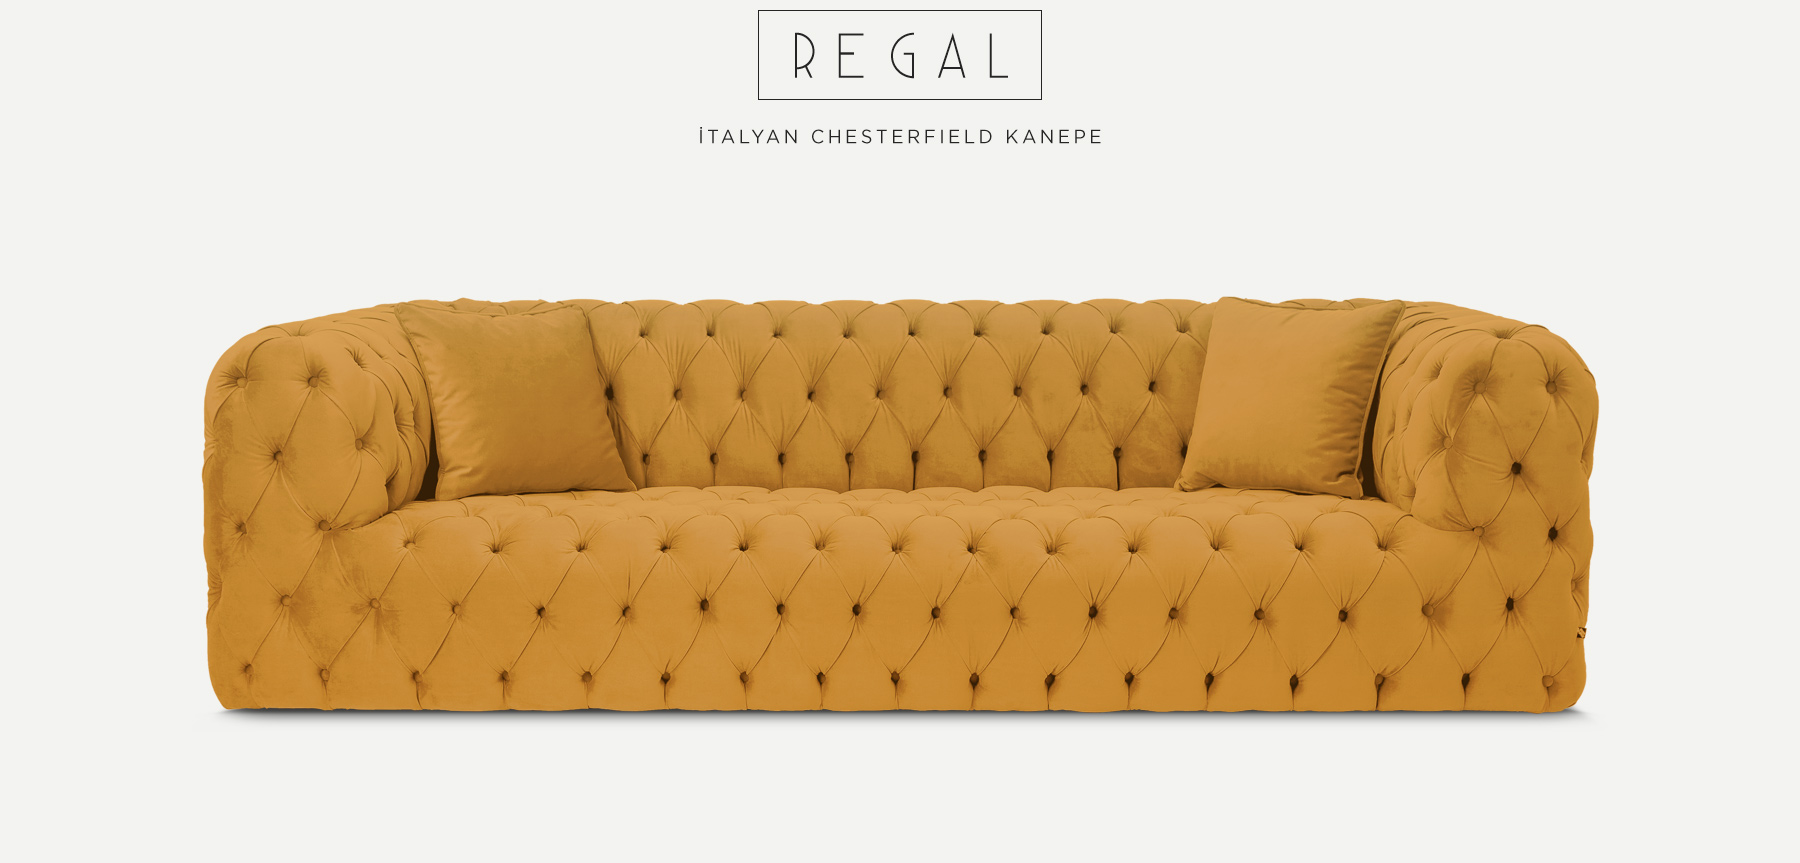 Regal Üçlü Hardal İtalyan ChesterfIeld'in resmi